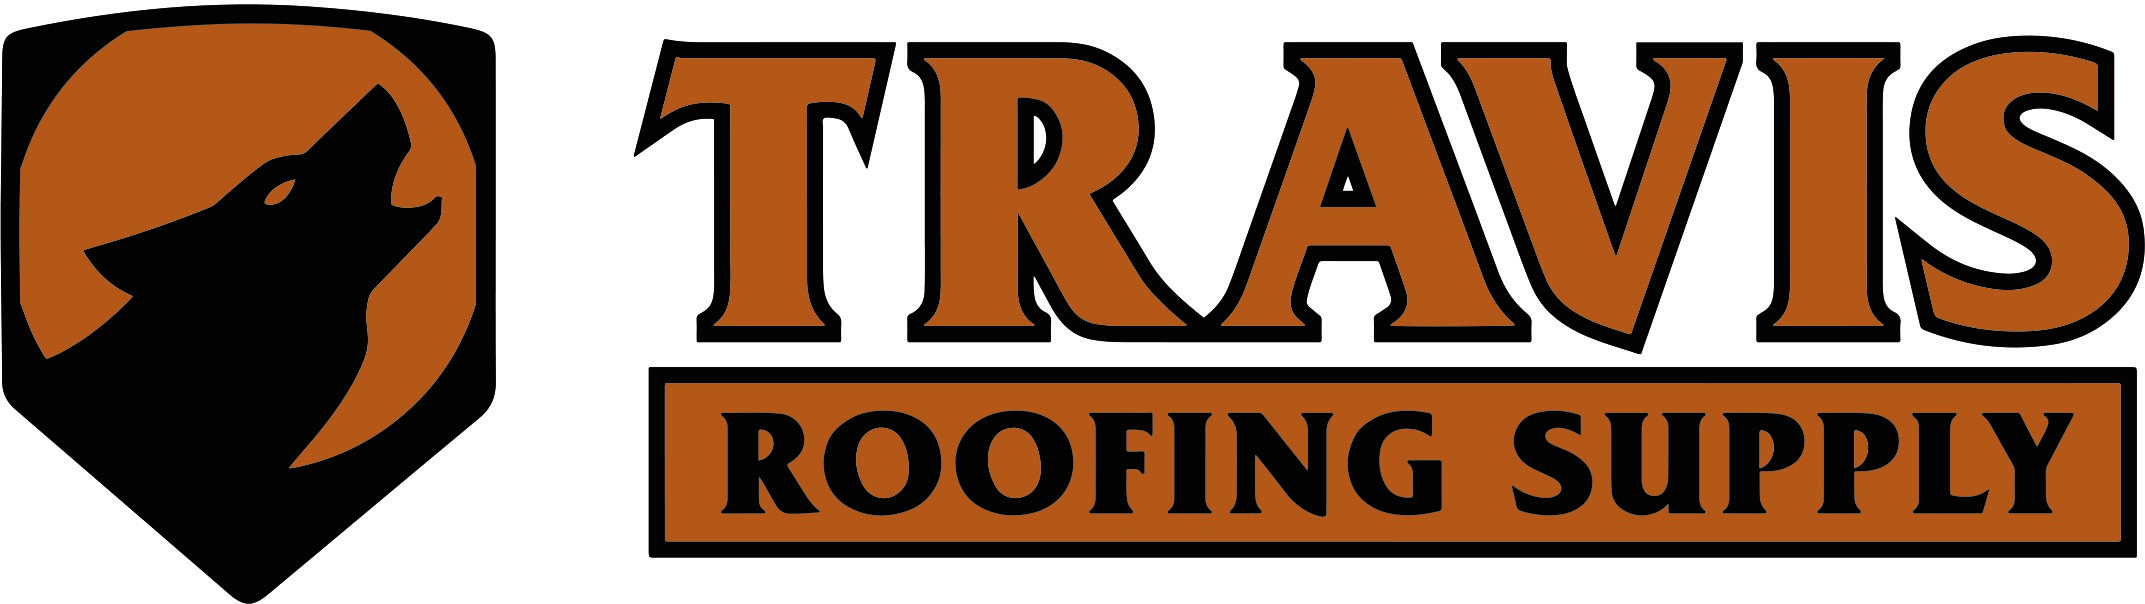 Travis Roofing Supply Opens New Branch In Nashville 2019 03 05 Roofing Contractor